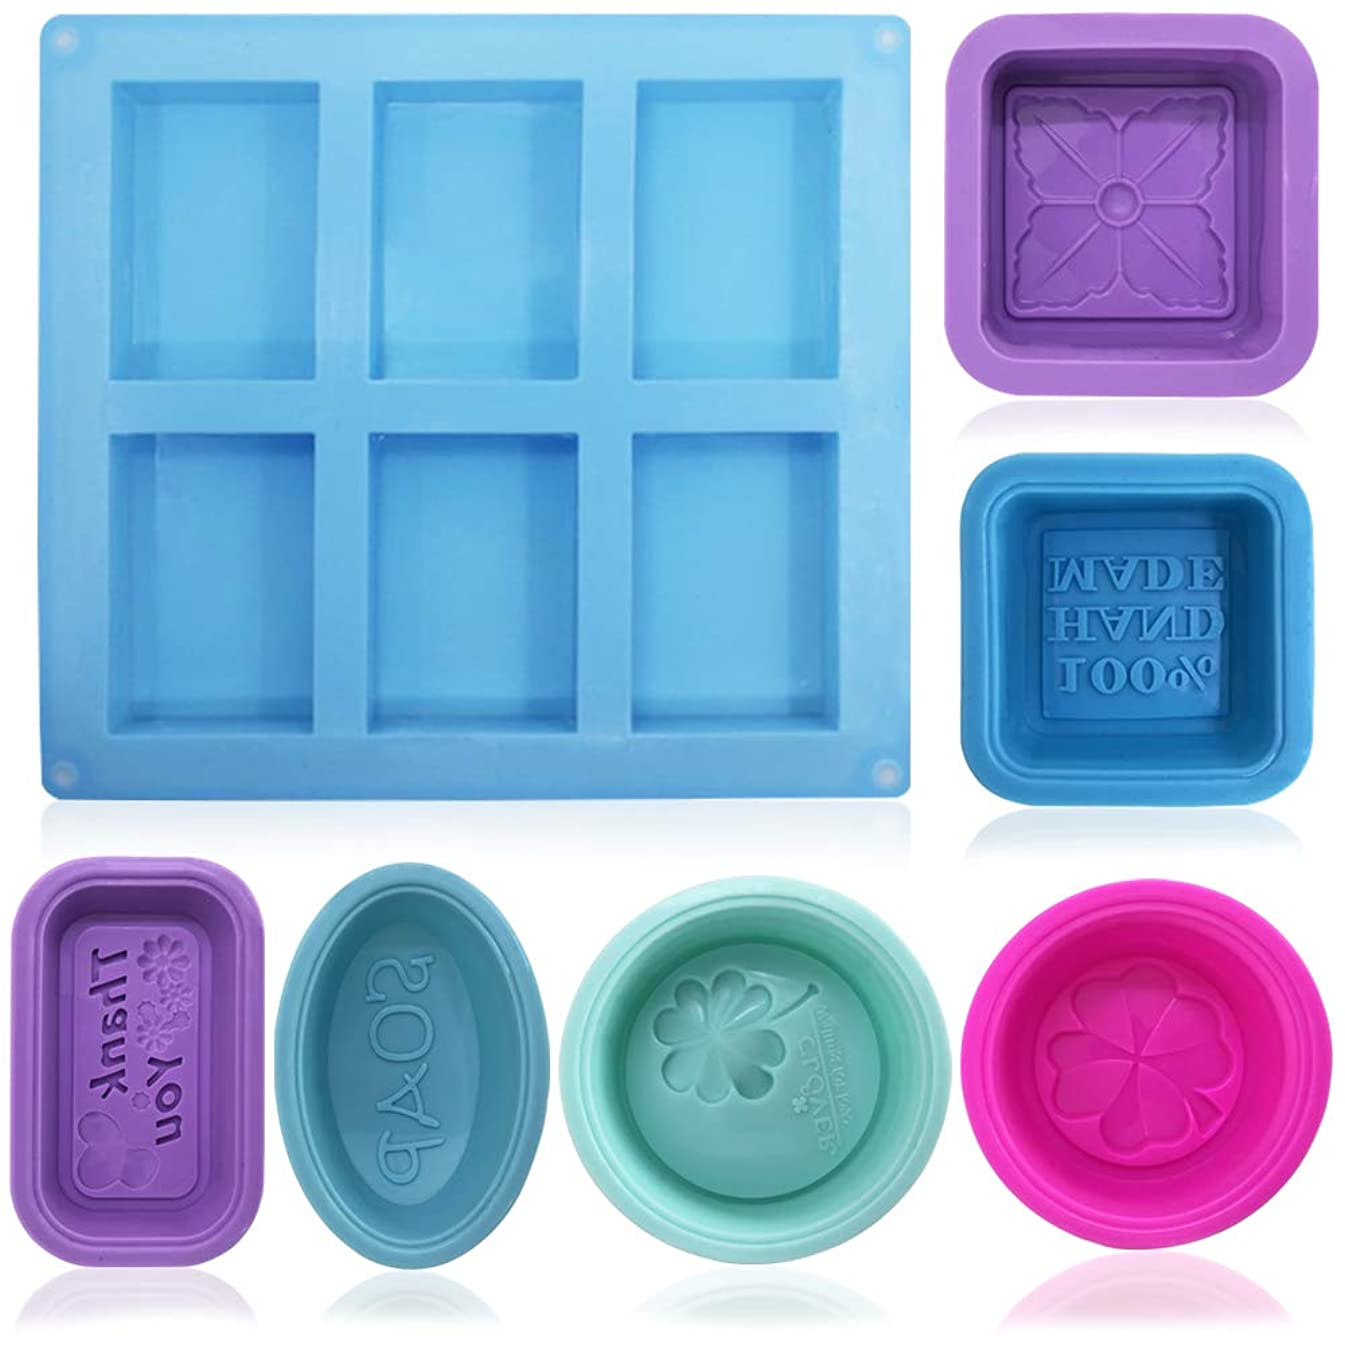 13 pcs Soap Making Molds, FineGood Food Grade Silicone Soap Mold, Cupcake Muffin Soft Baking Pan Mould for DIY Homemade Craft - Blue, Rose Red, Purple, Green